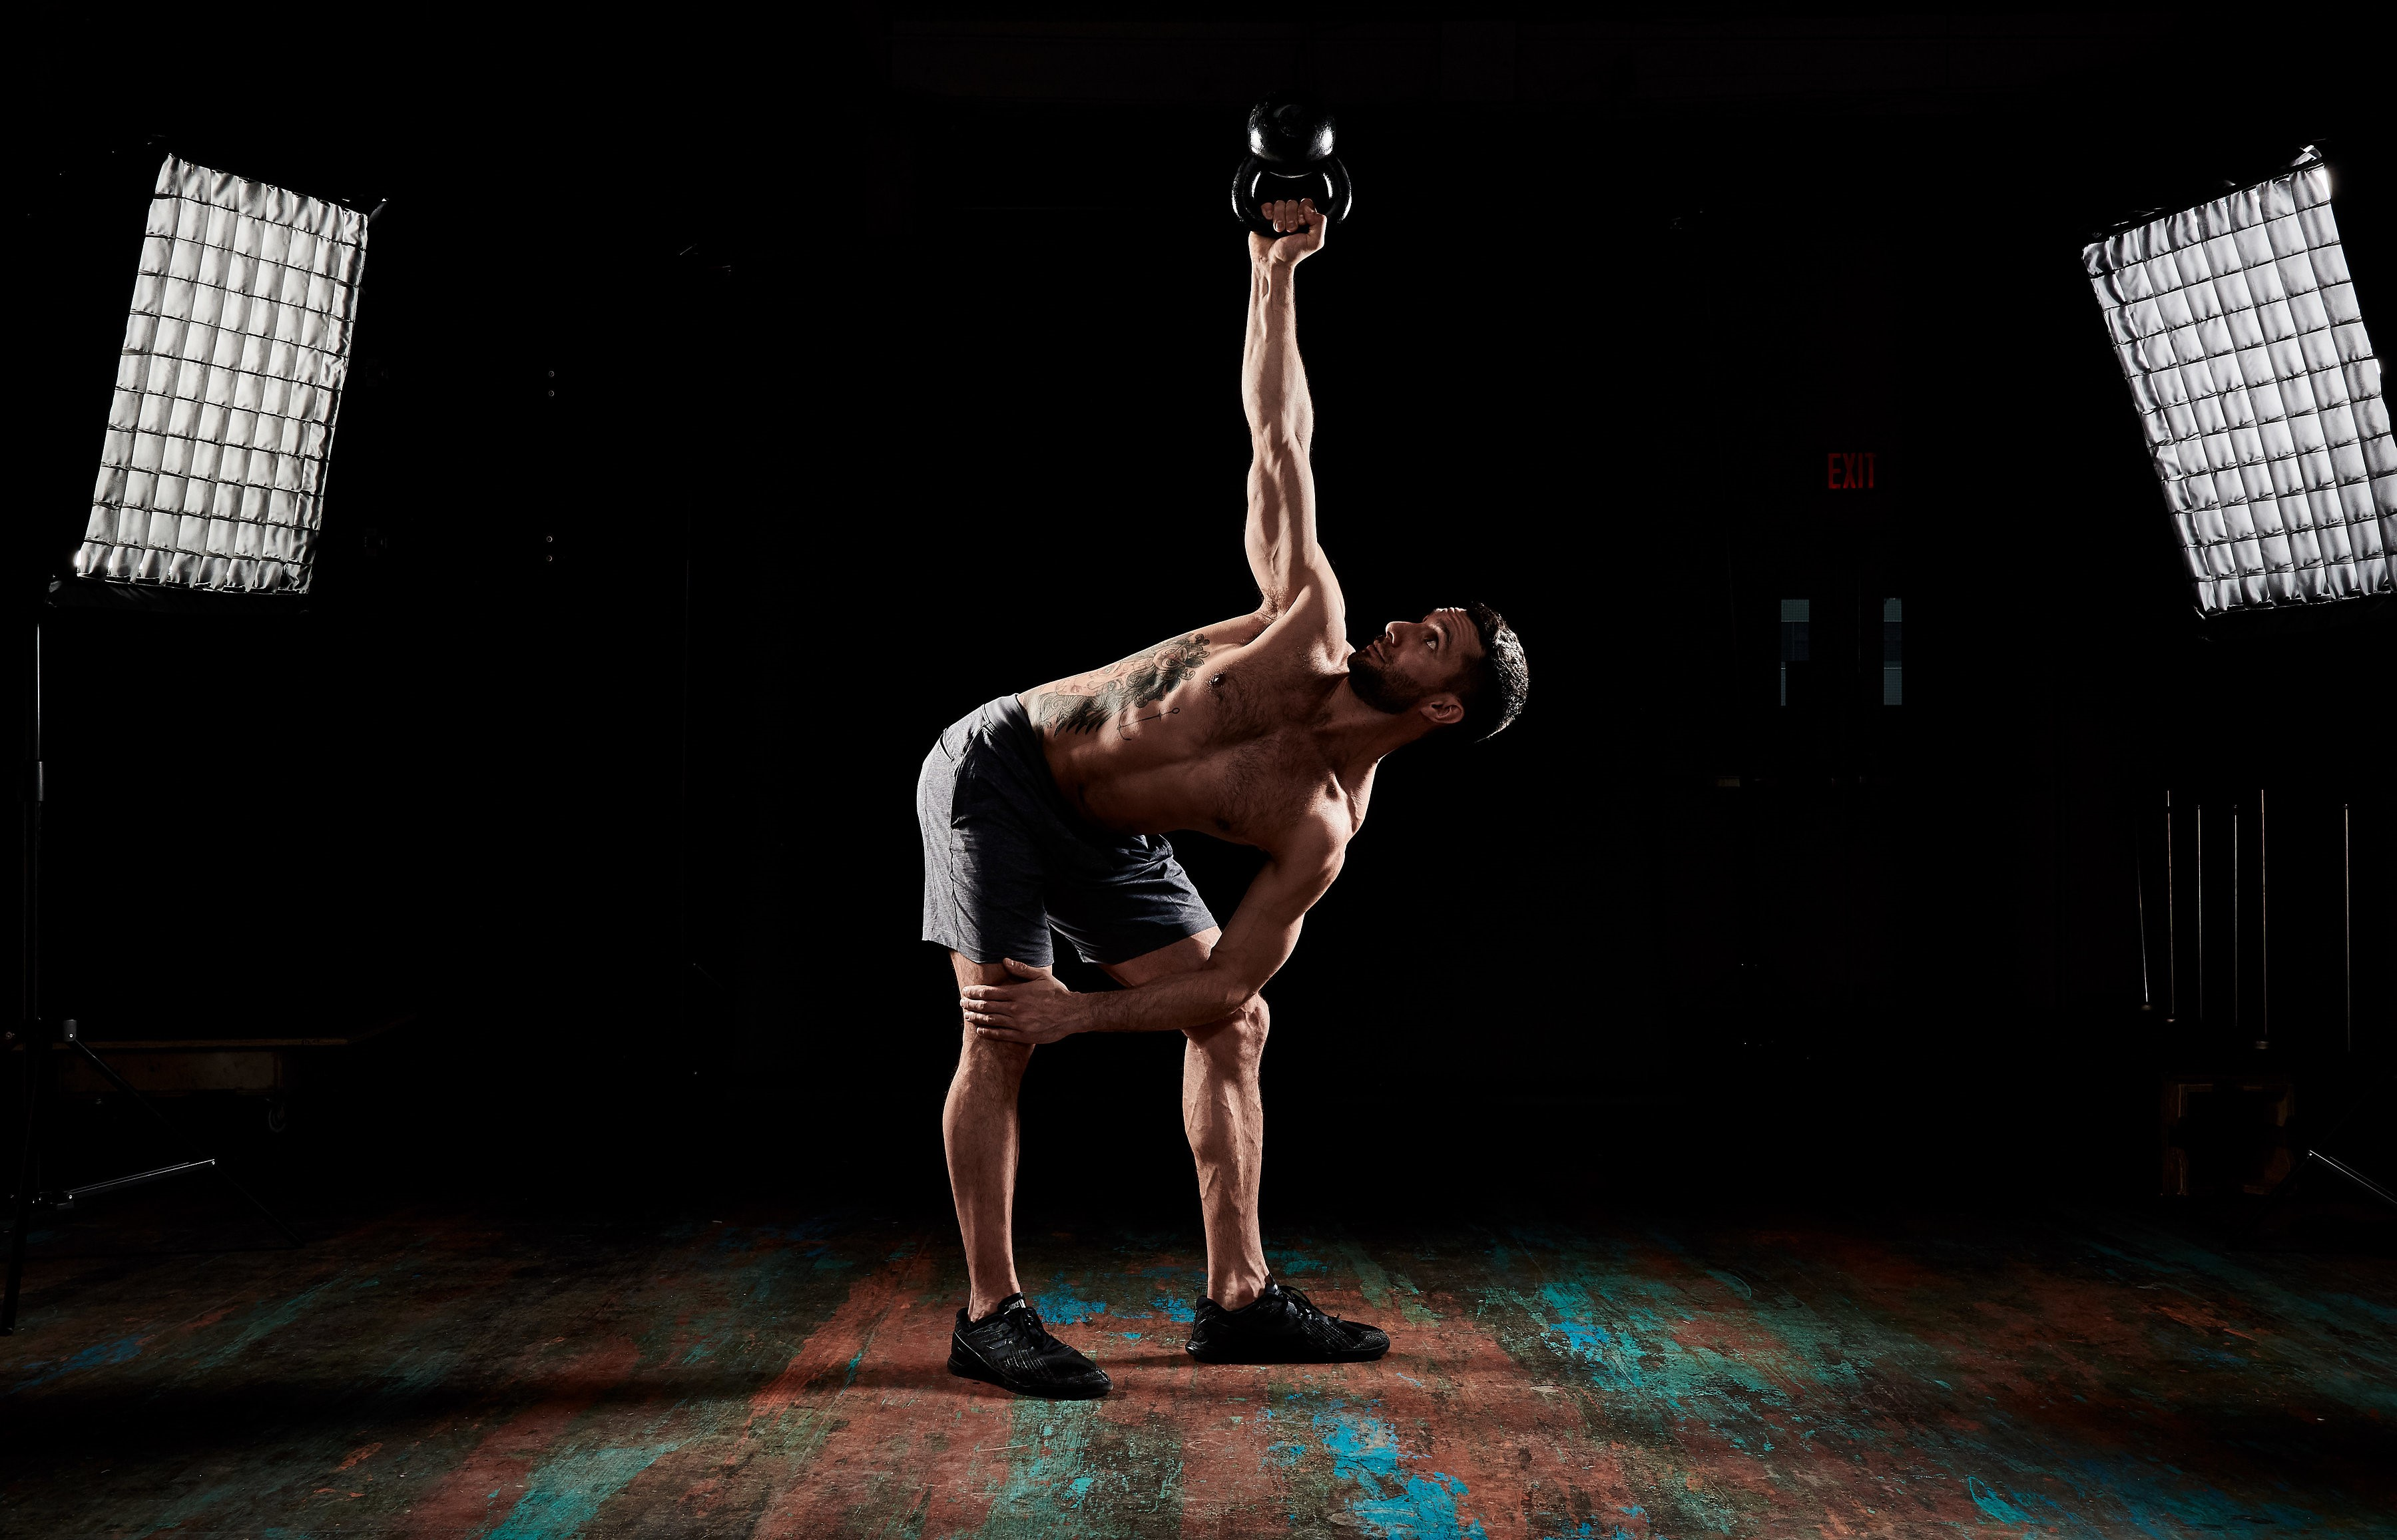 Vancouver's Top Personal Trainers and Group Fitness Instructors